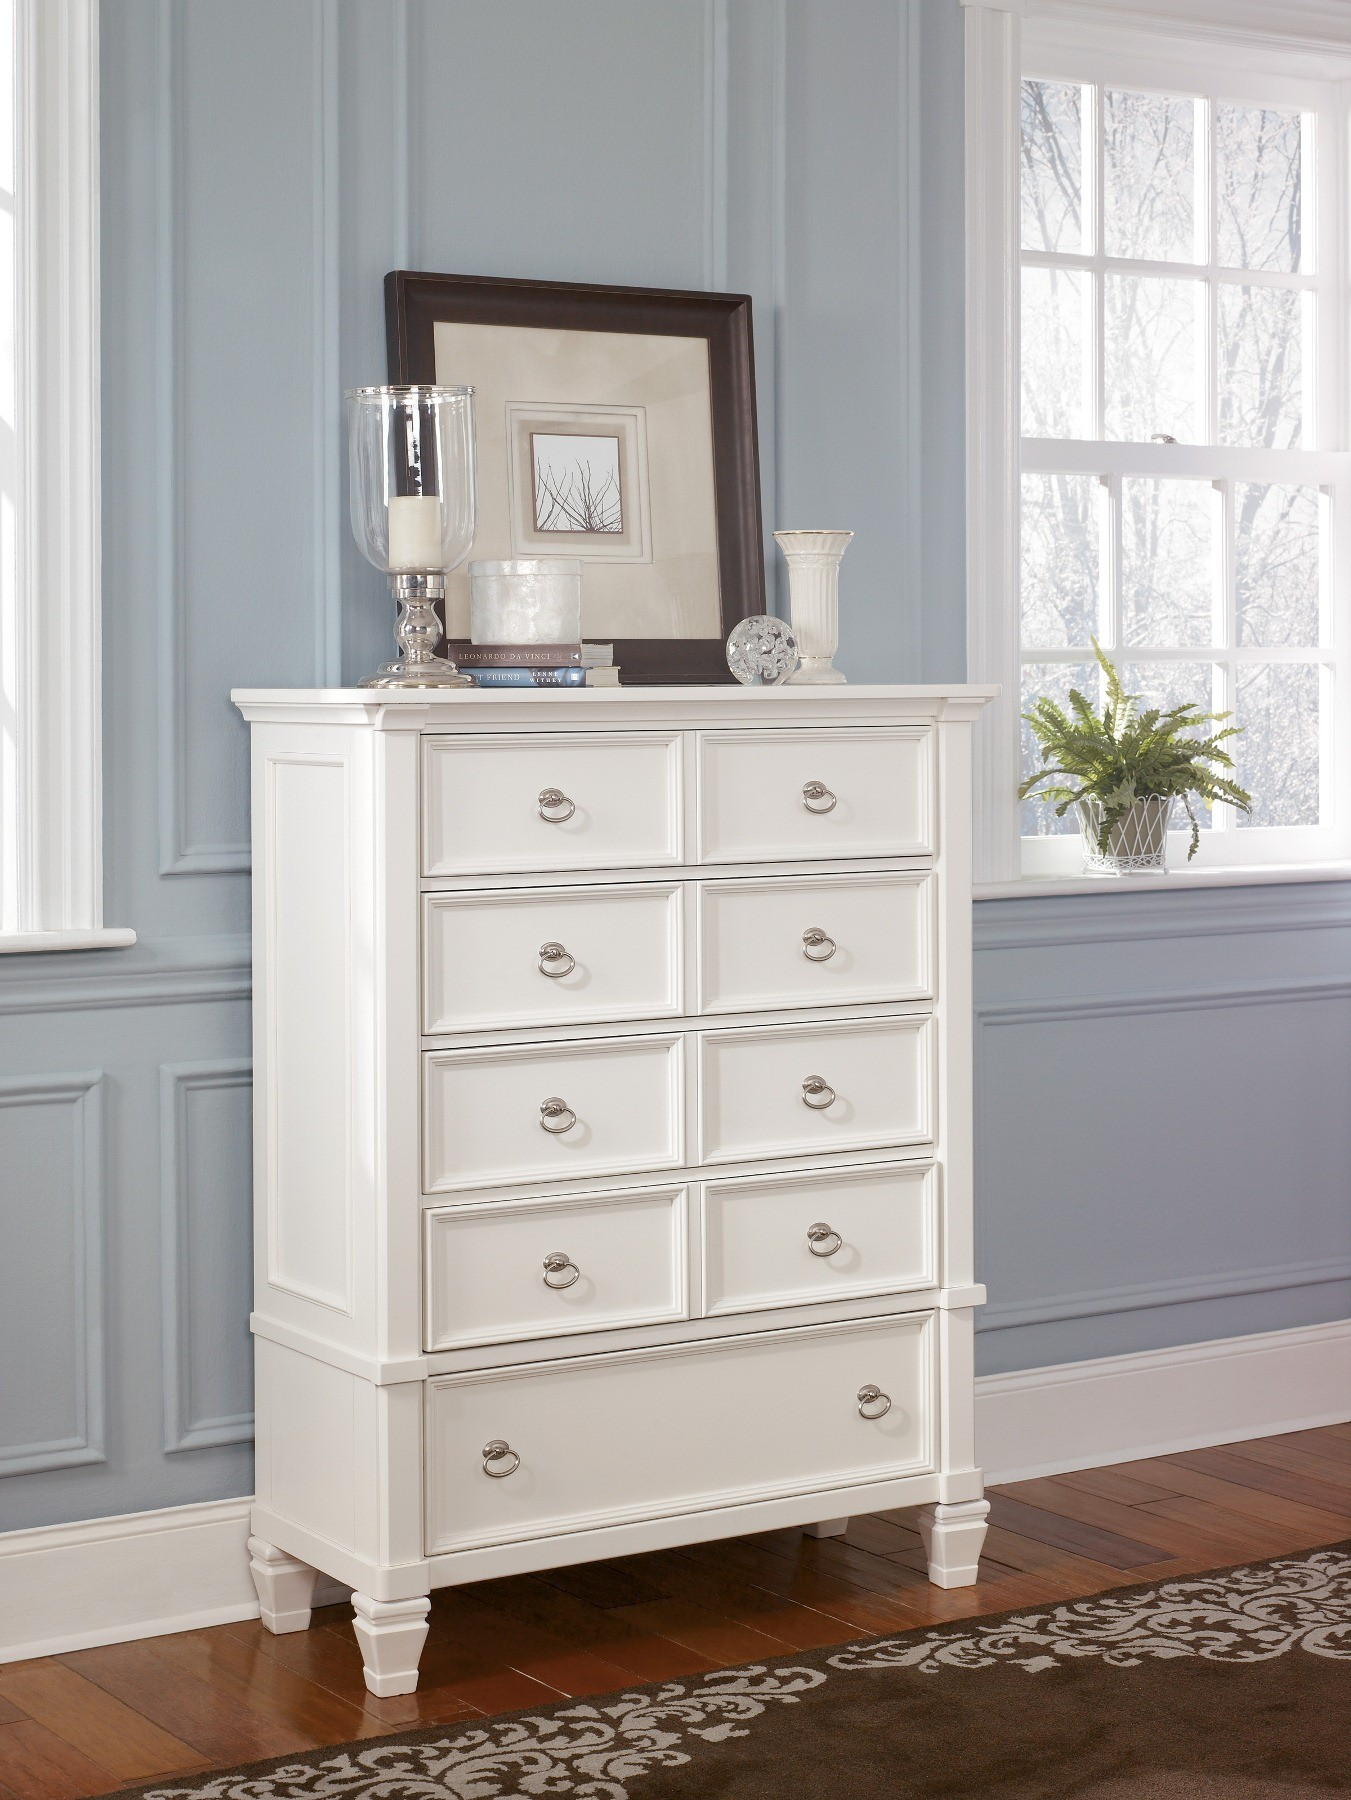 Prentice Chest From Ashley B672 46 Coleman Furniture